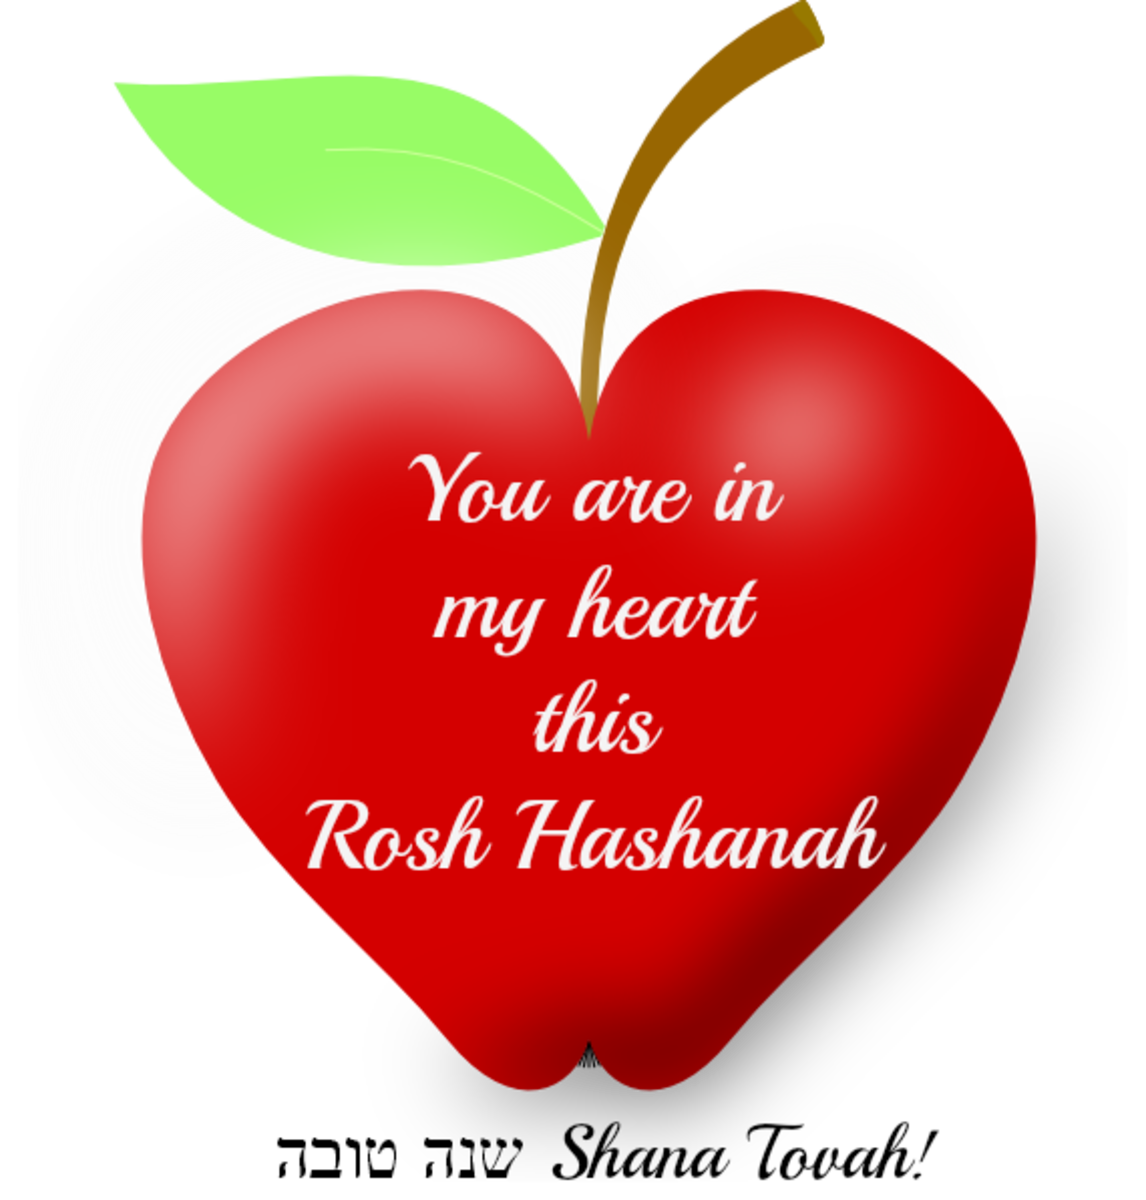 To the one you love on Rosh Hashanah